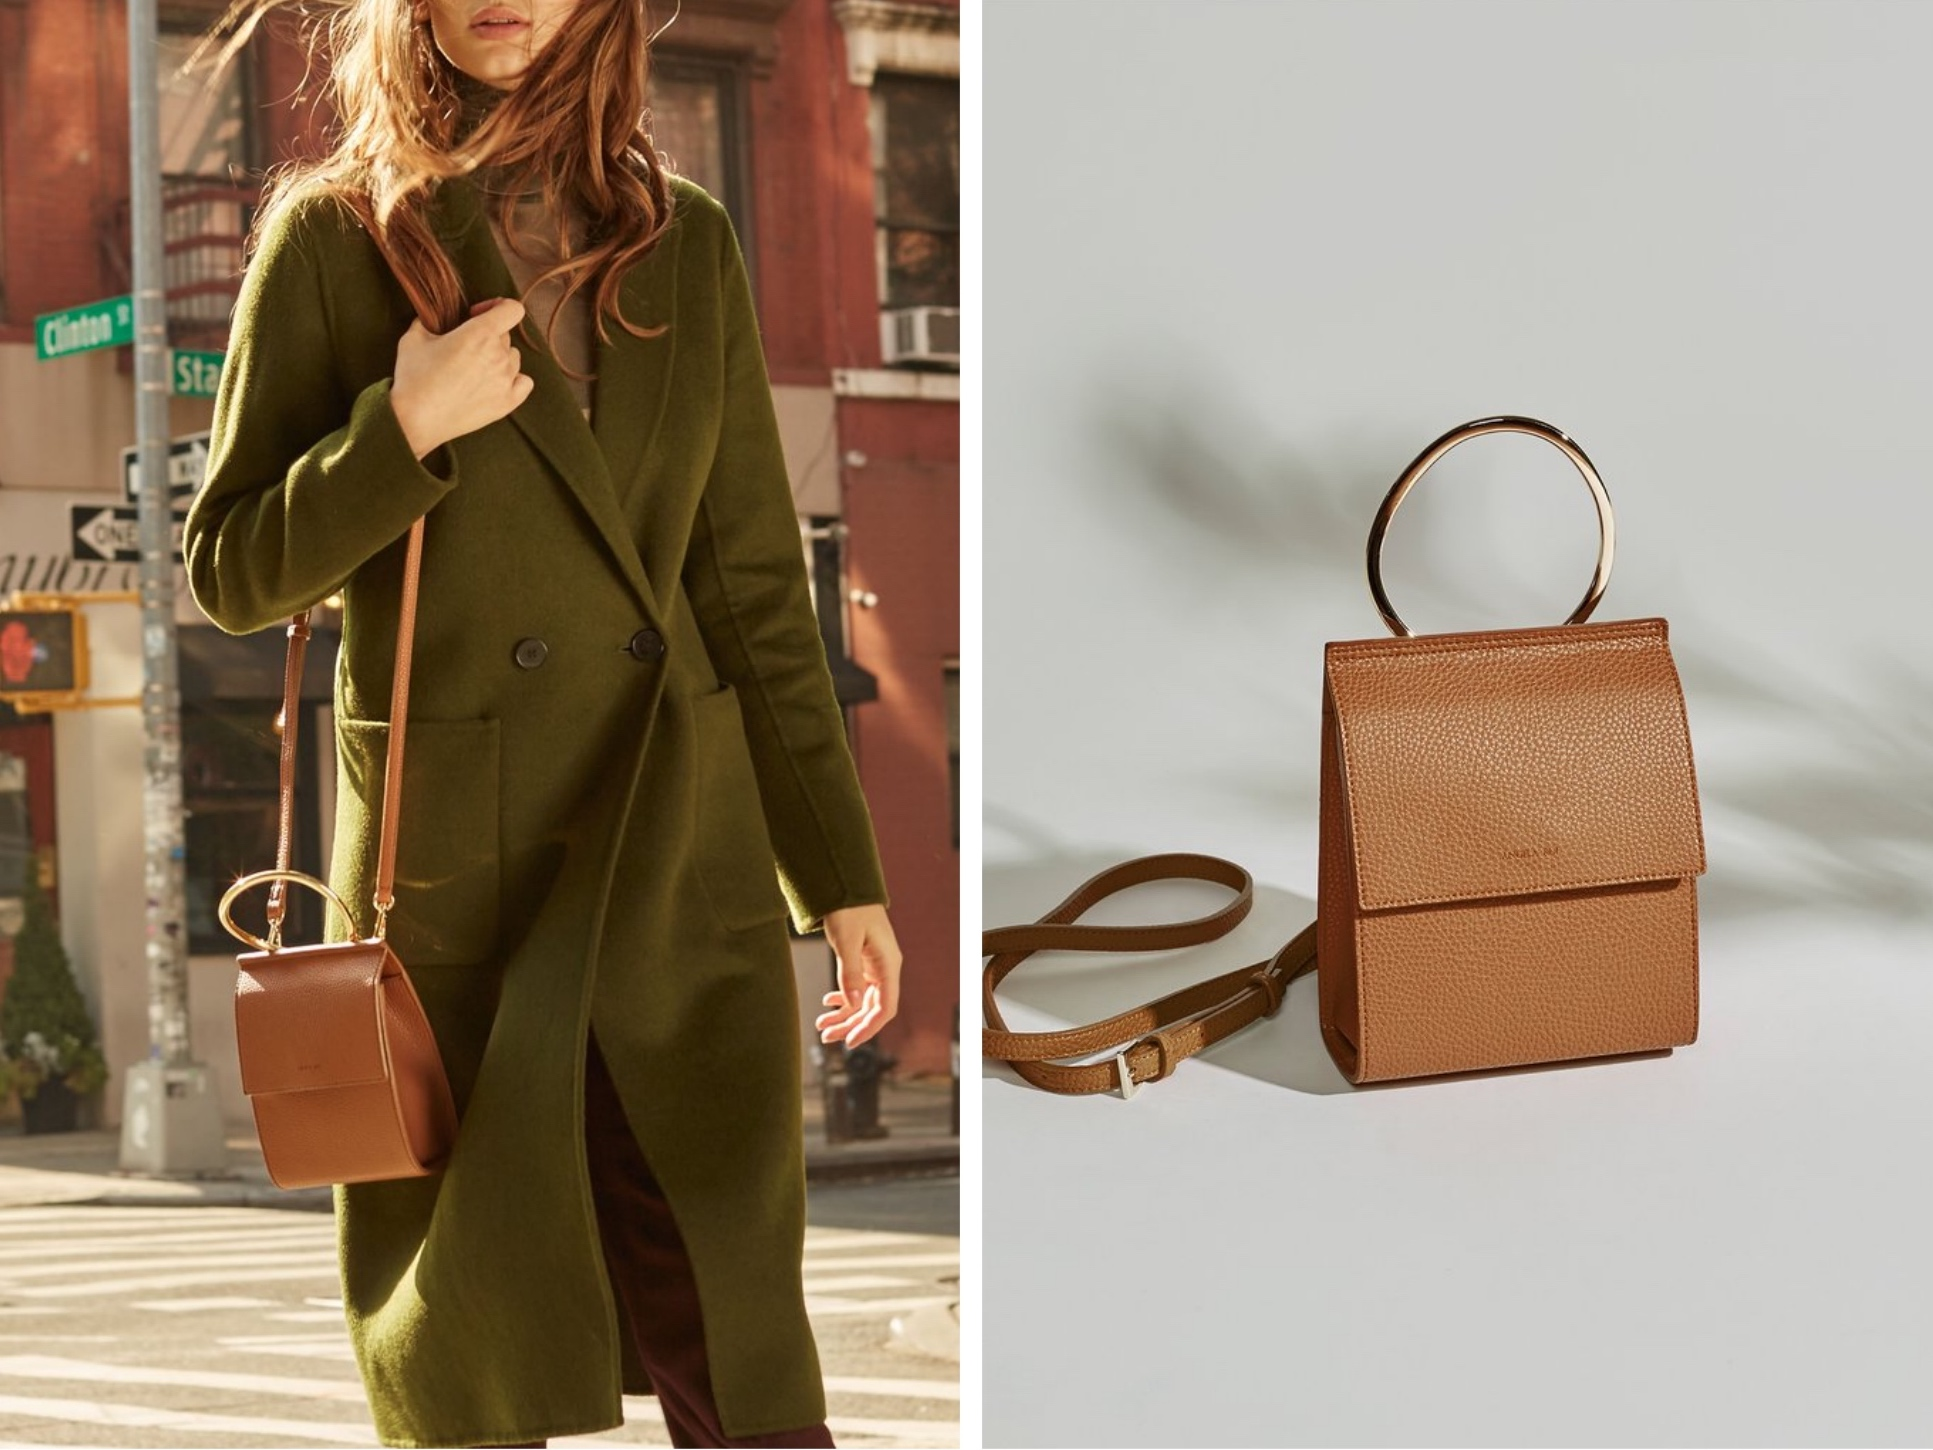 The Ethical Luxury Vegan Handbag Brand From Nyc Features Modern Classic Bags In High Quality Polyurethane Short Pu Which Is Sustainable Alternative